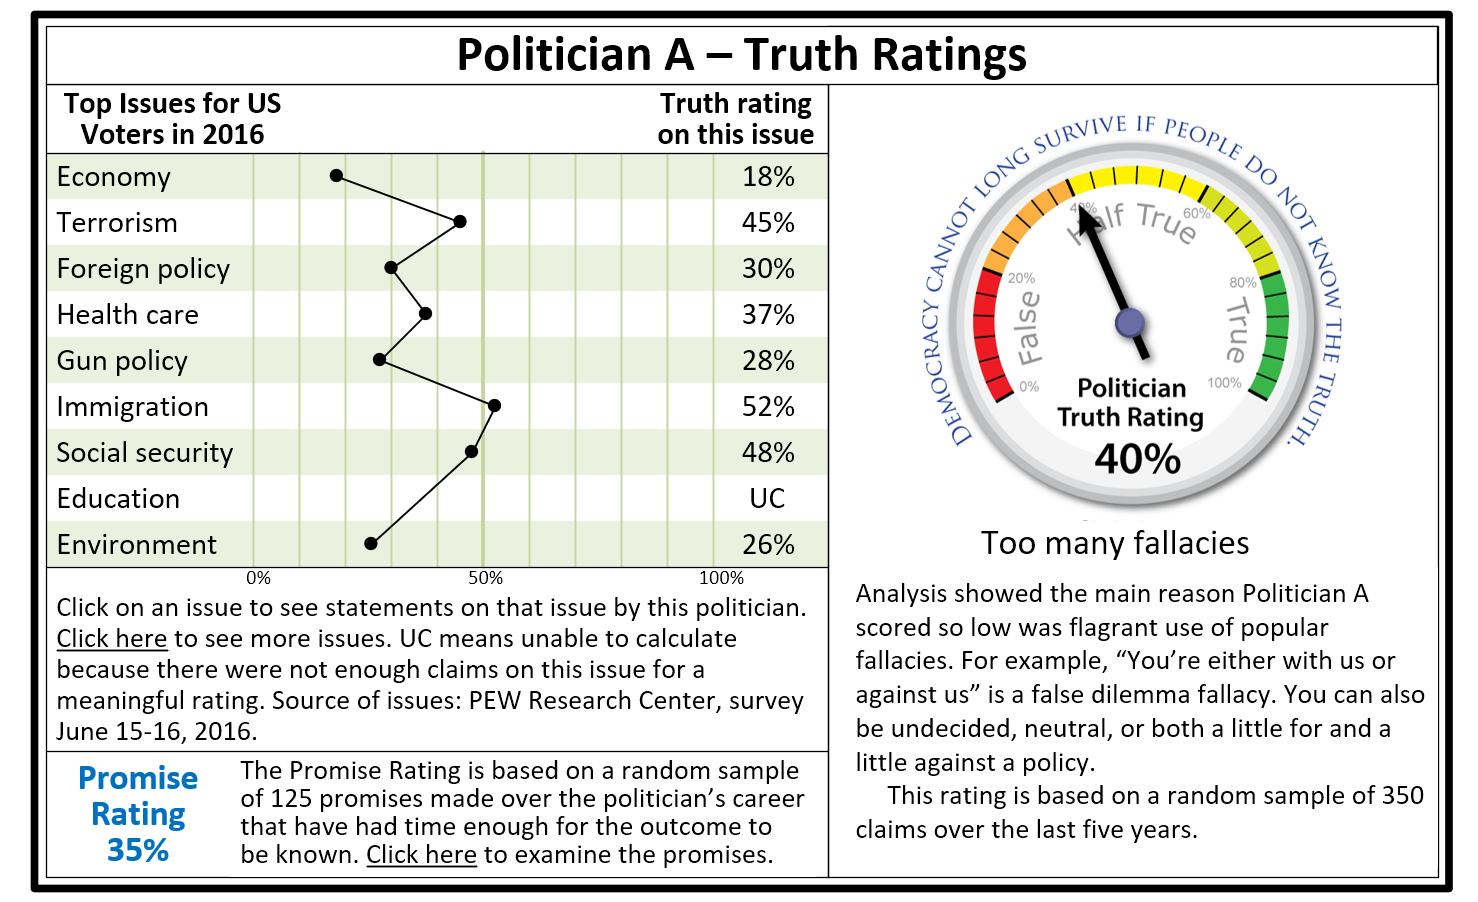 Politician Truth Rating mockup